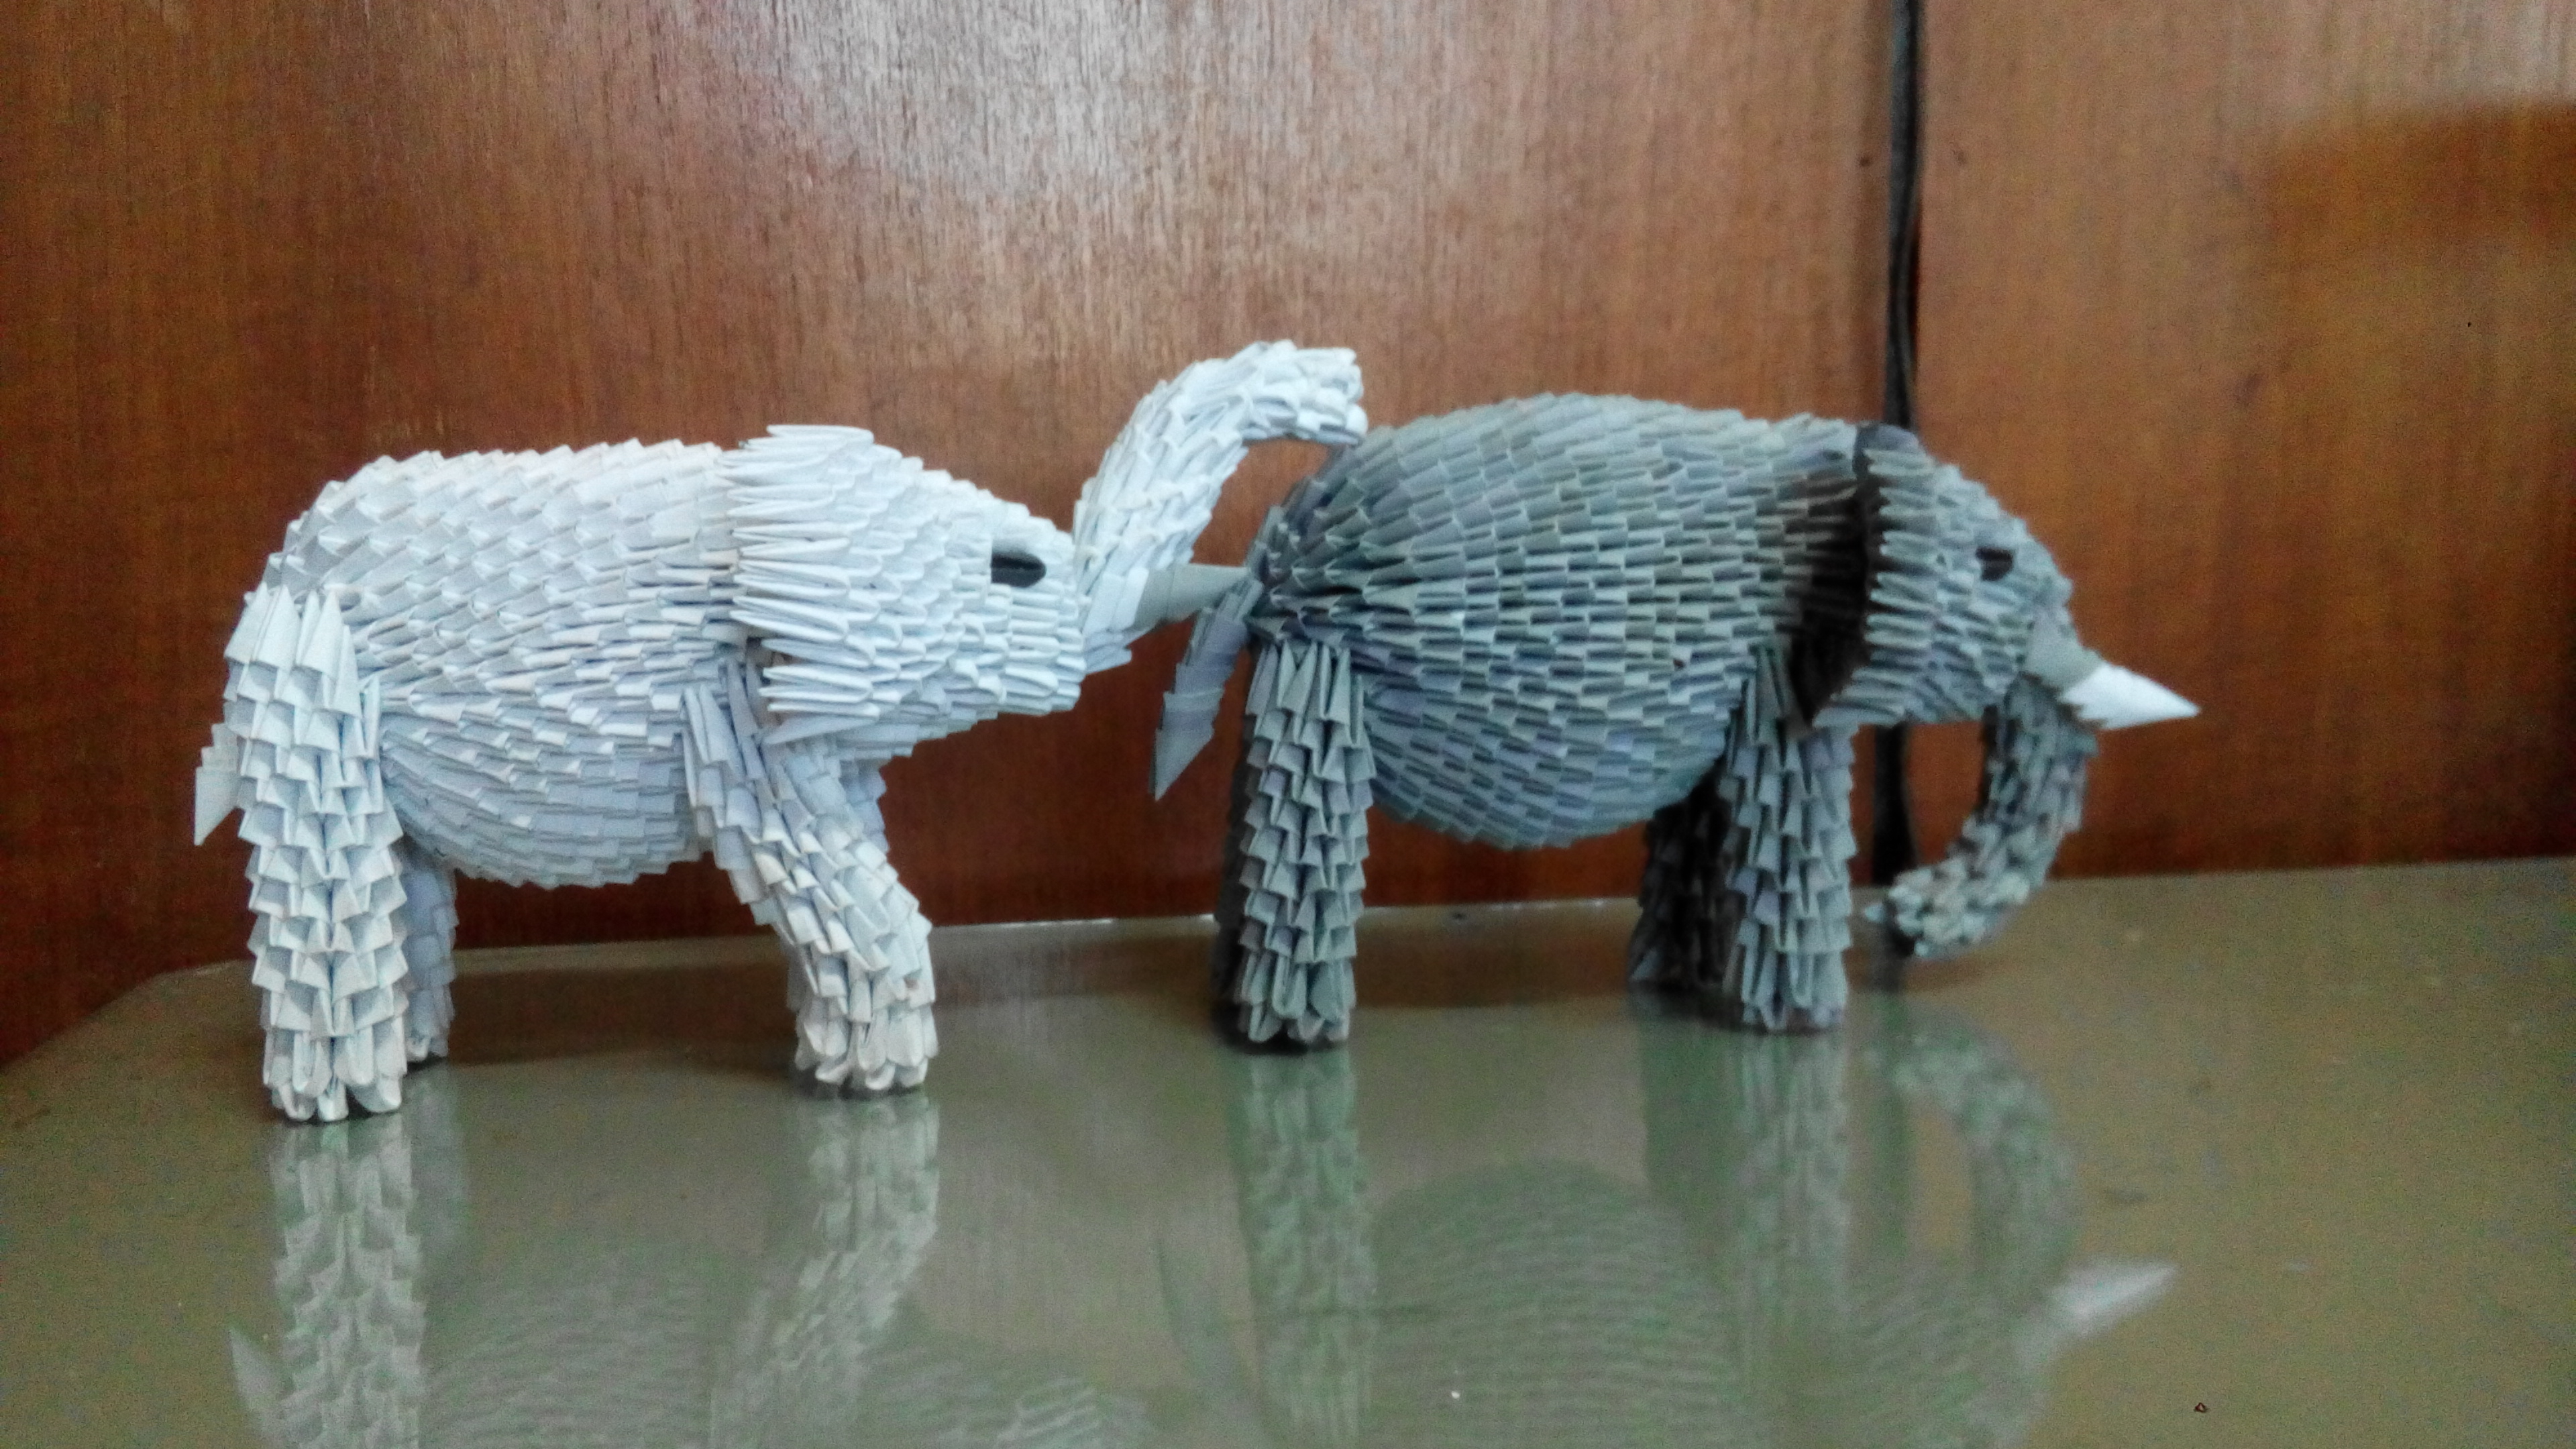 How to Make an Elephant Paper Craft Fun Crafts for Kids Paper Craft 3d Origami Elephant Tutorial Httpsyoutubehzetqn5jv